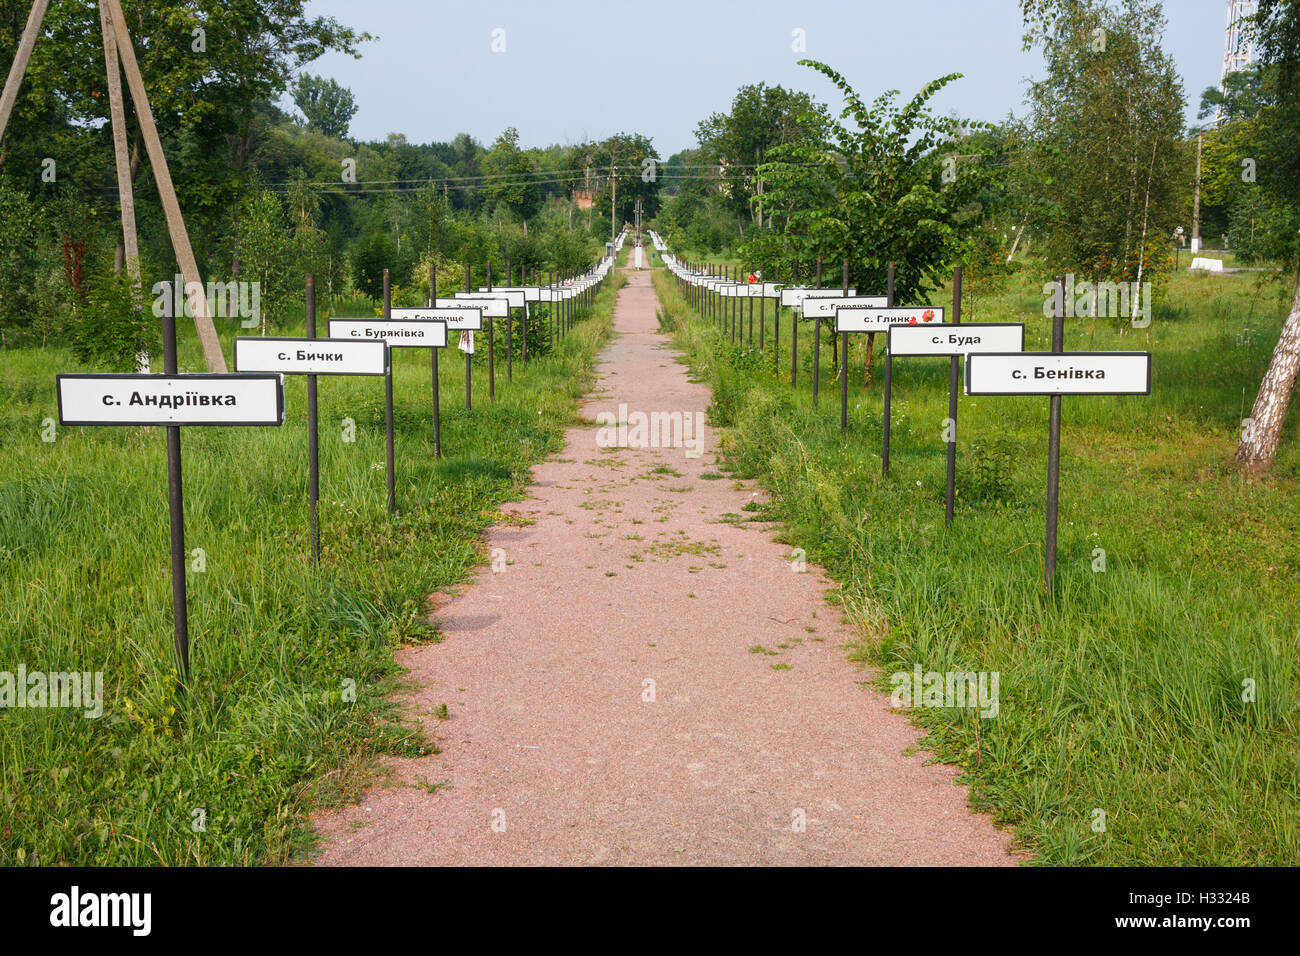 Signs of the towns and villages evacuated due to the Chernobyl nuclear disaster. Chernobyl, Ukraine. - Stock Image